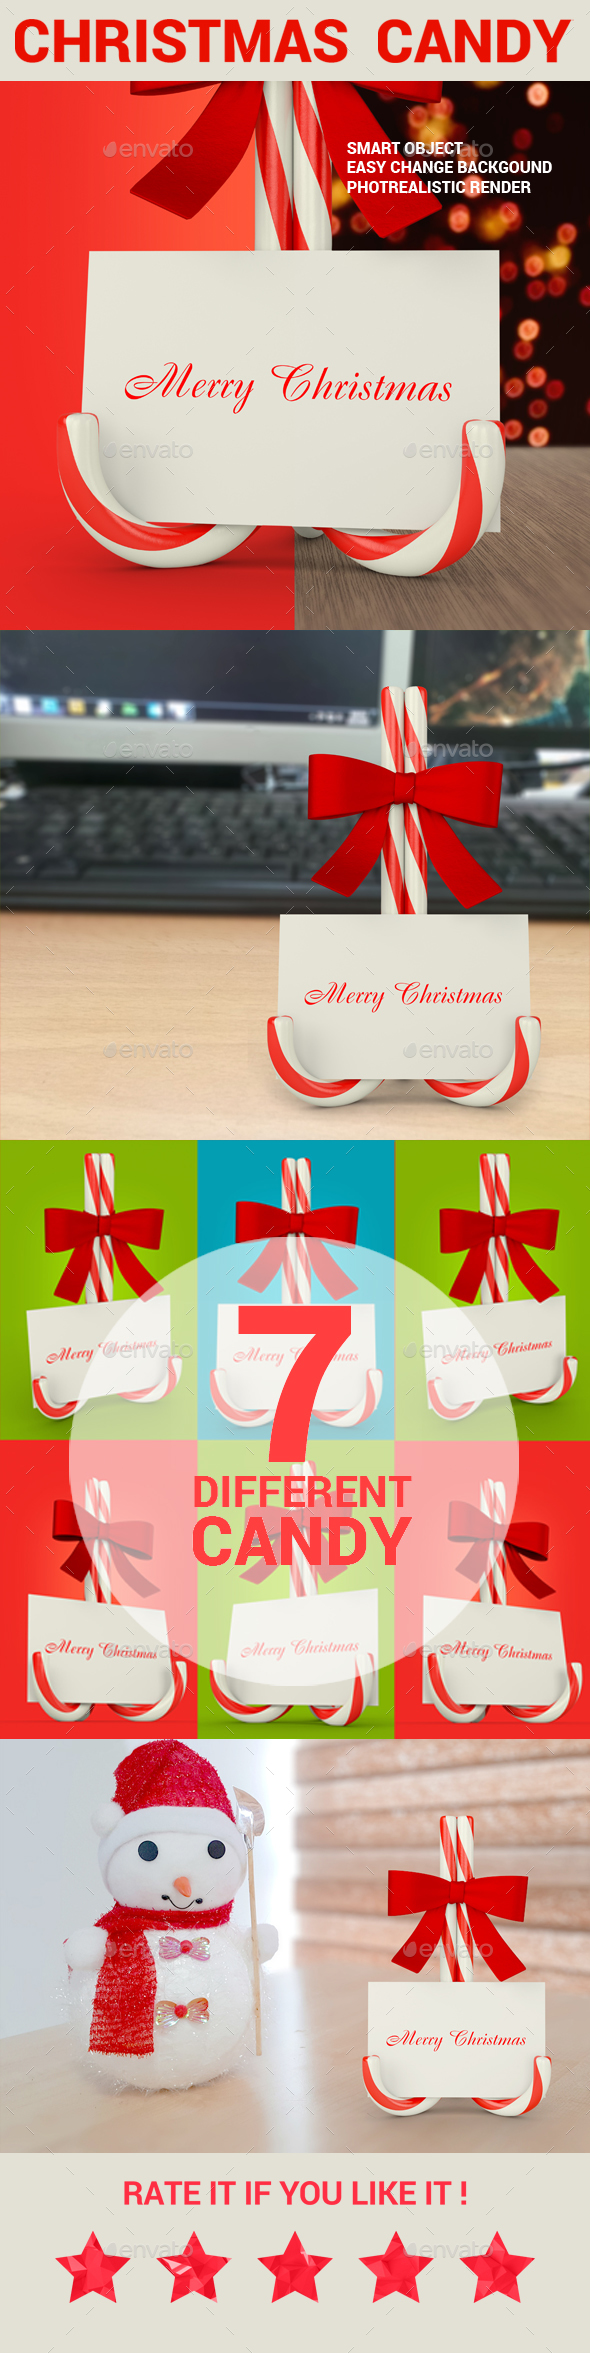 Christmas Candy Mock-Up - Miscellaneous Print